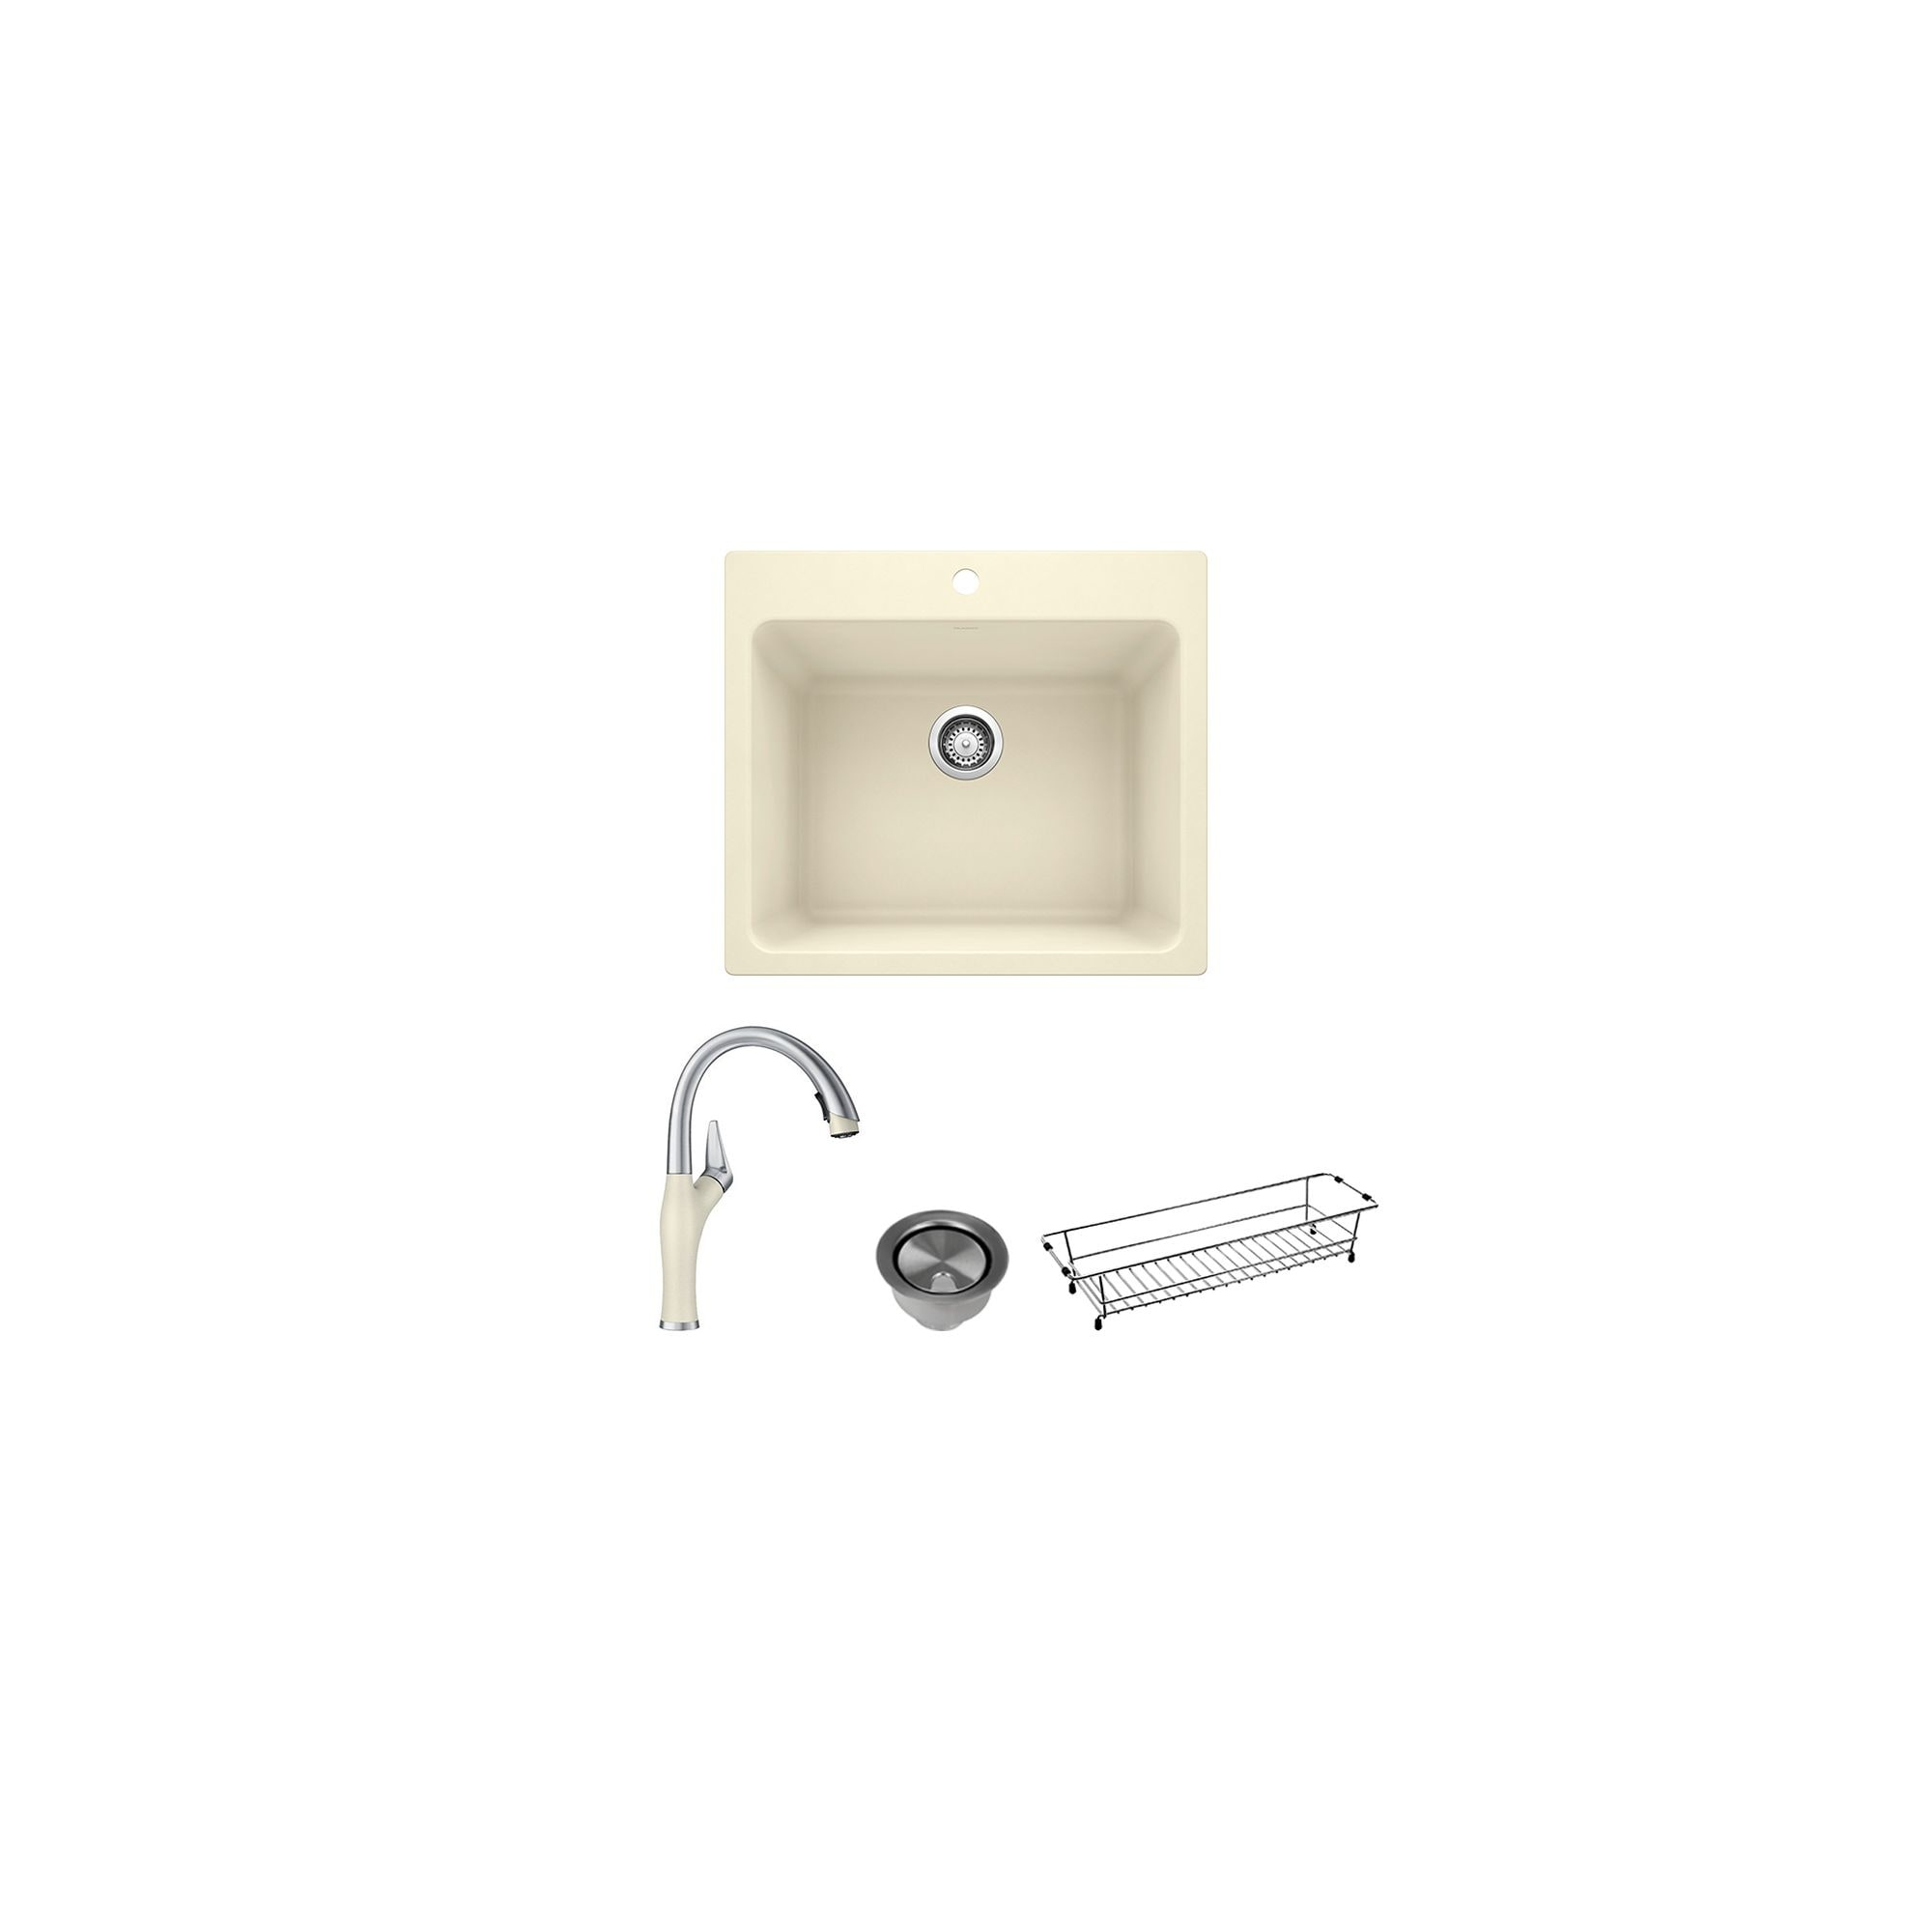 Blanco Liven Laundry Sink With Pull Down Faucet Basket And Strainer 22 X 25 X 12 22 X 25 X 12 Overstock 31927539